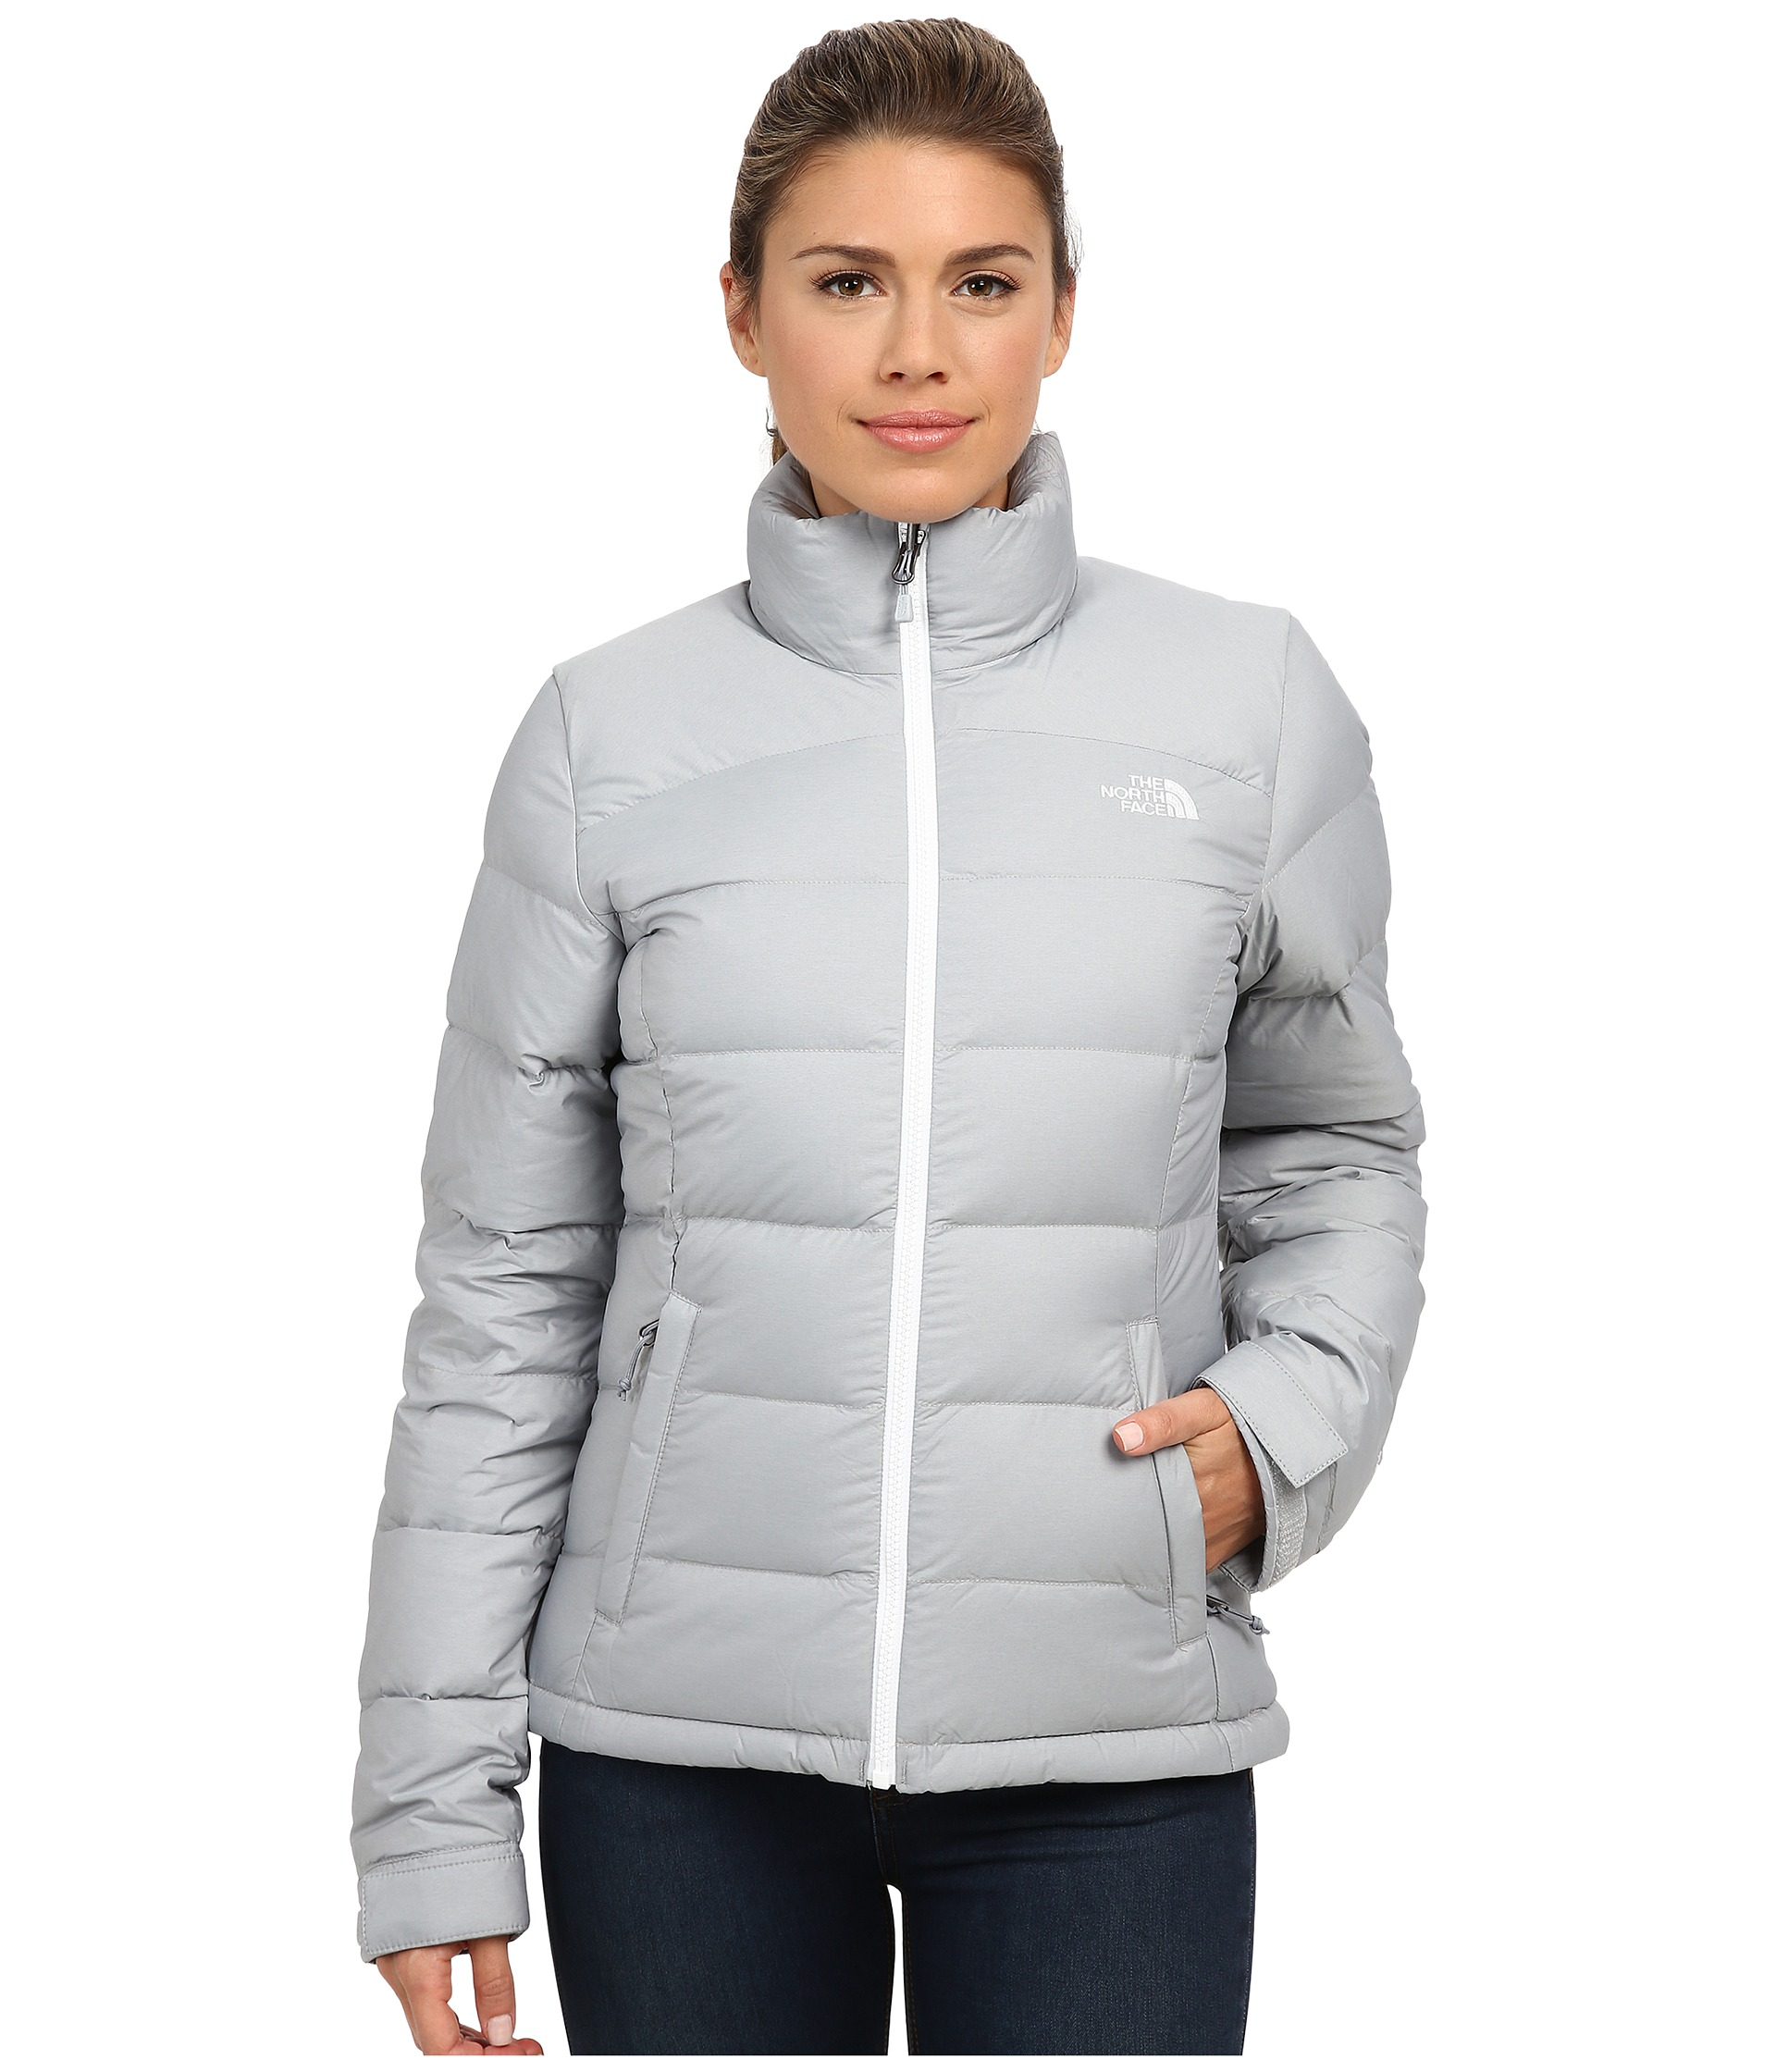 the north face nuptse 2 jacket. Black Bedroom Furniture Sets. Home Design Ideas